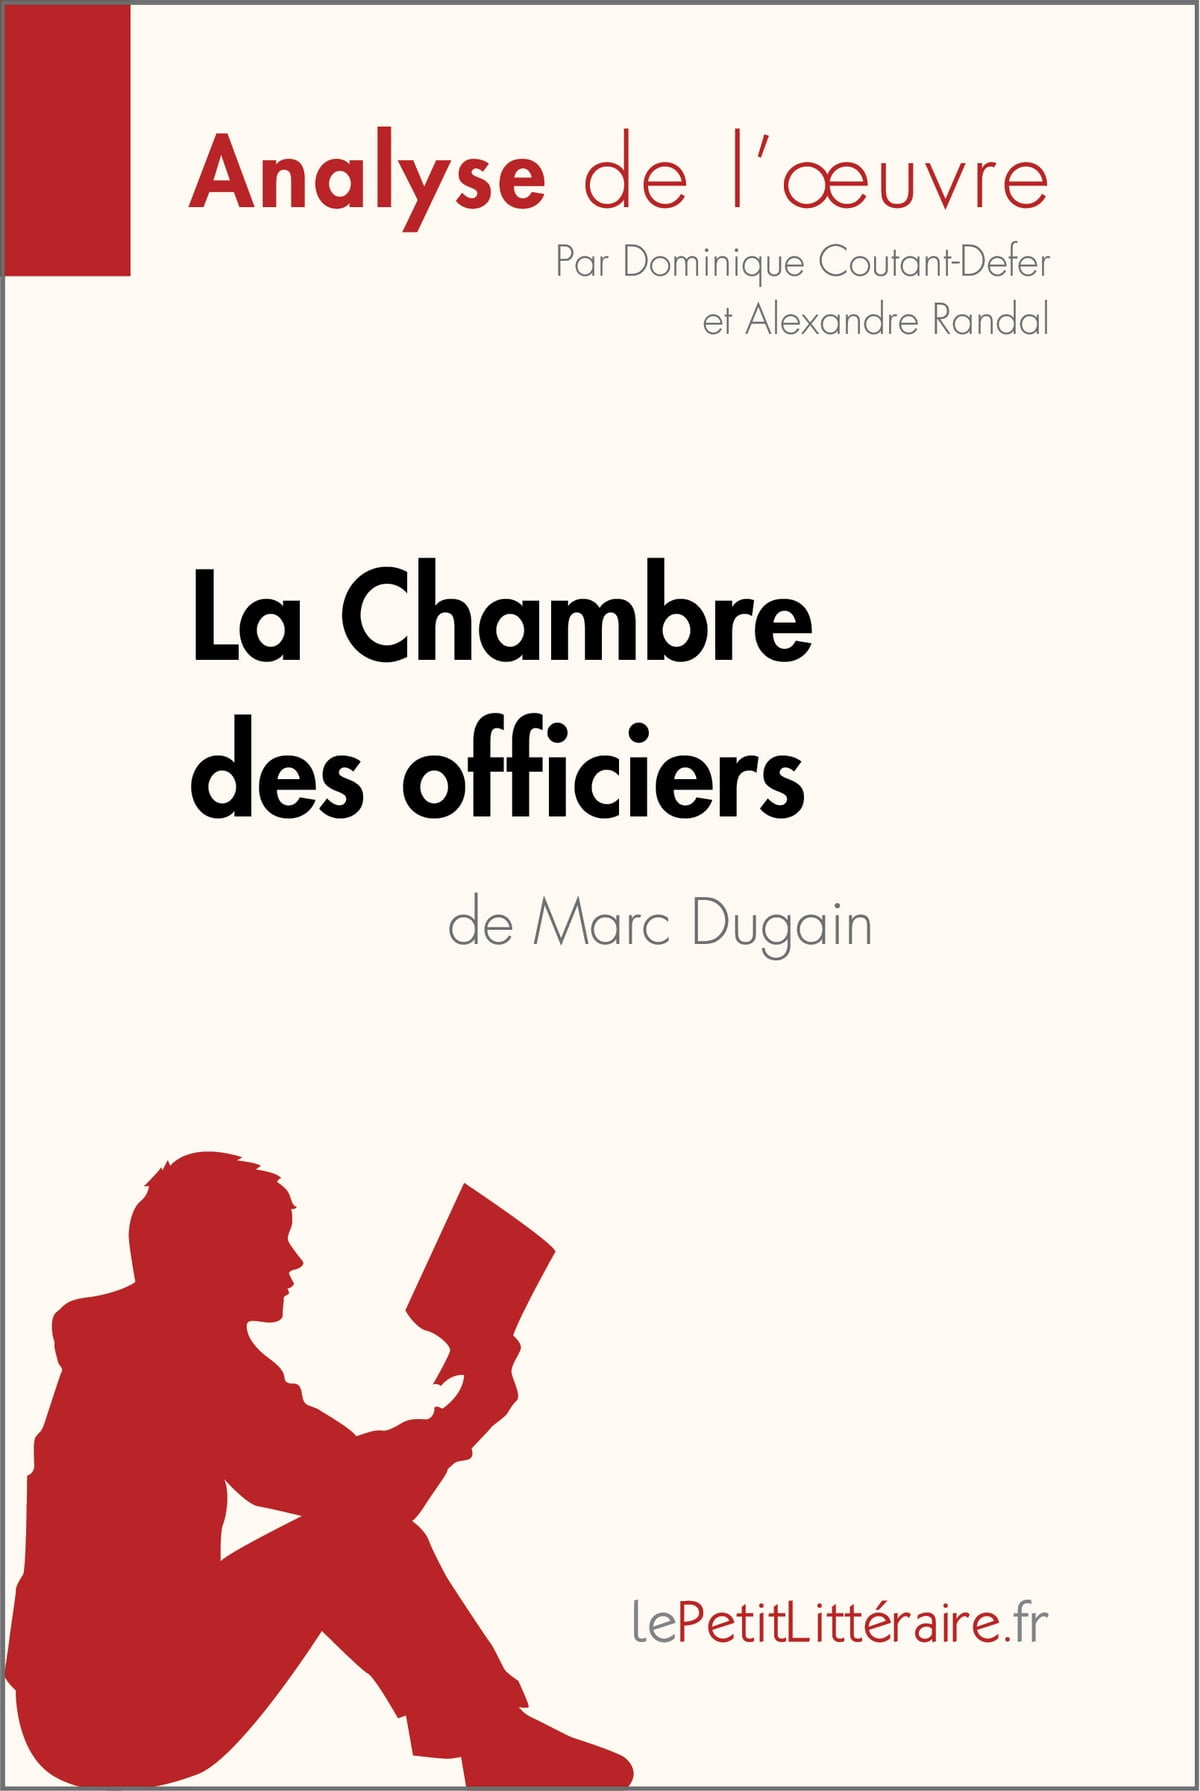 La Chambre Des Officiers De Marc Dugain Analyse De L Oeuvre Ebook By Dominique Coutant Defer 9782806219510 Rakuten Kobo United States